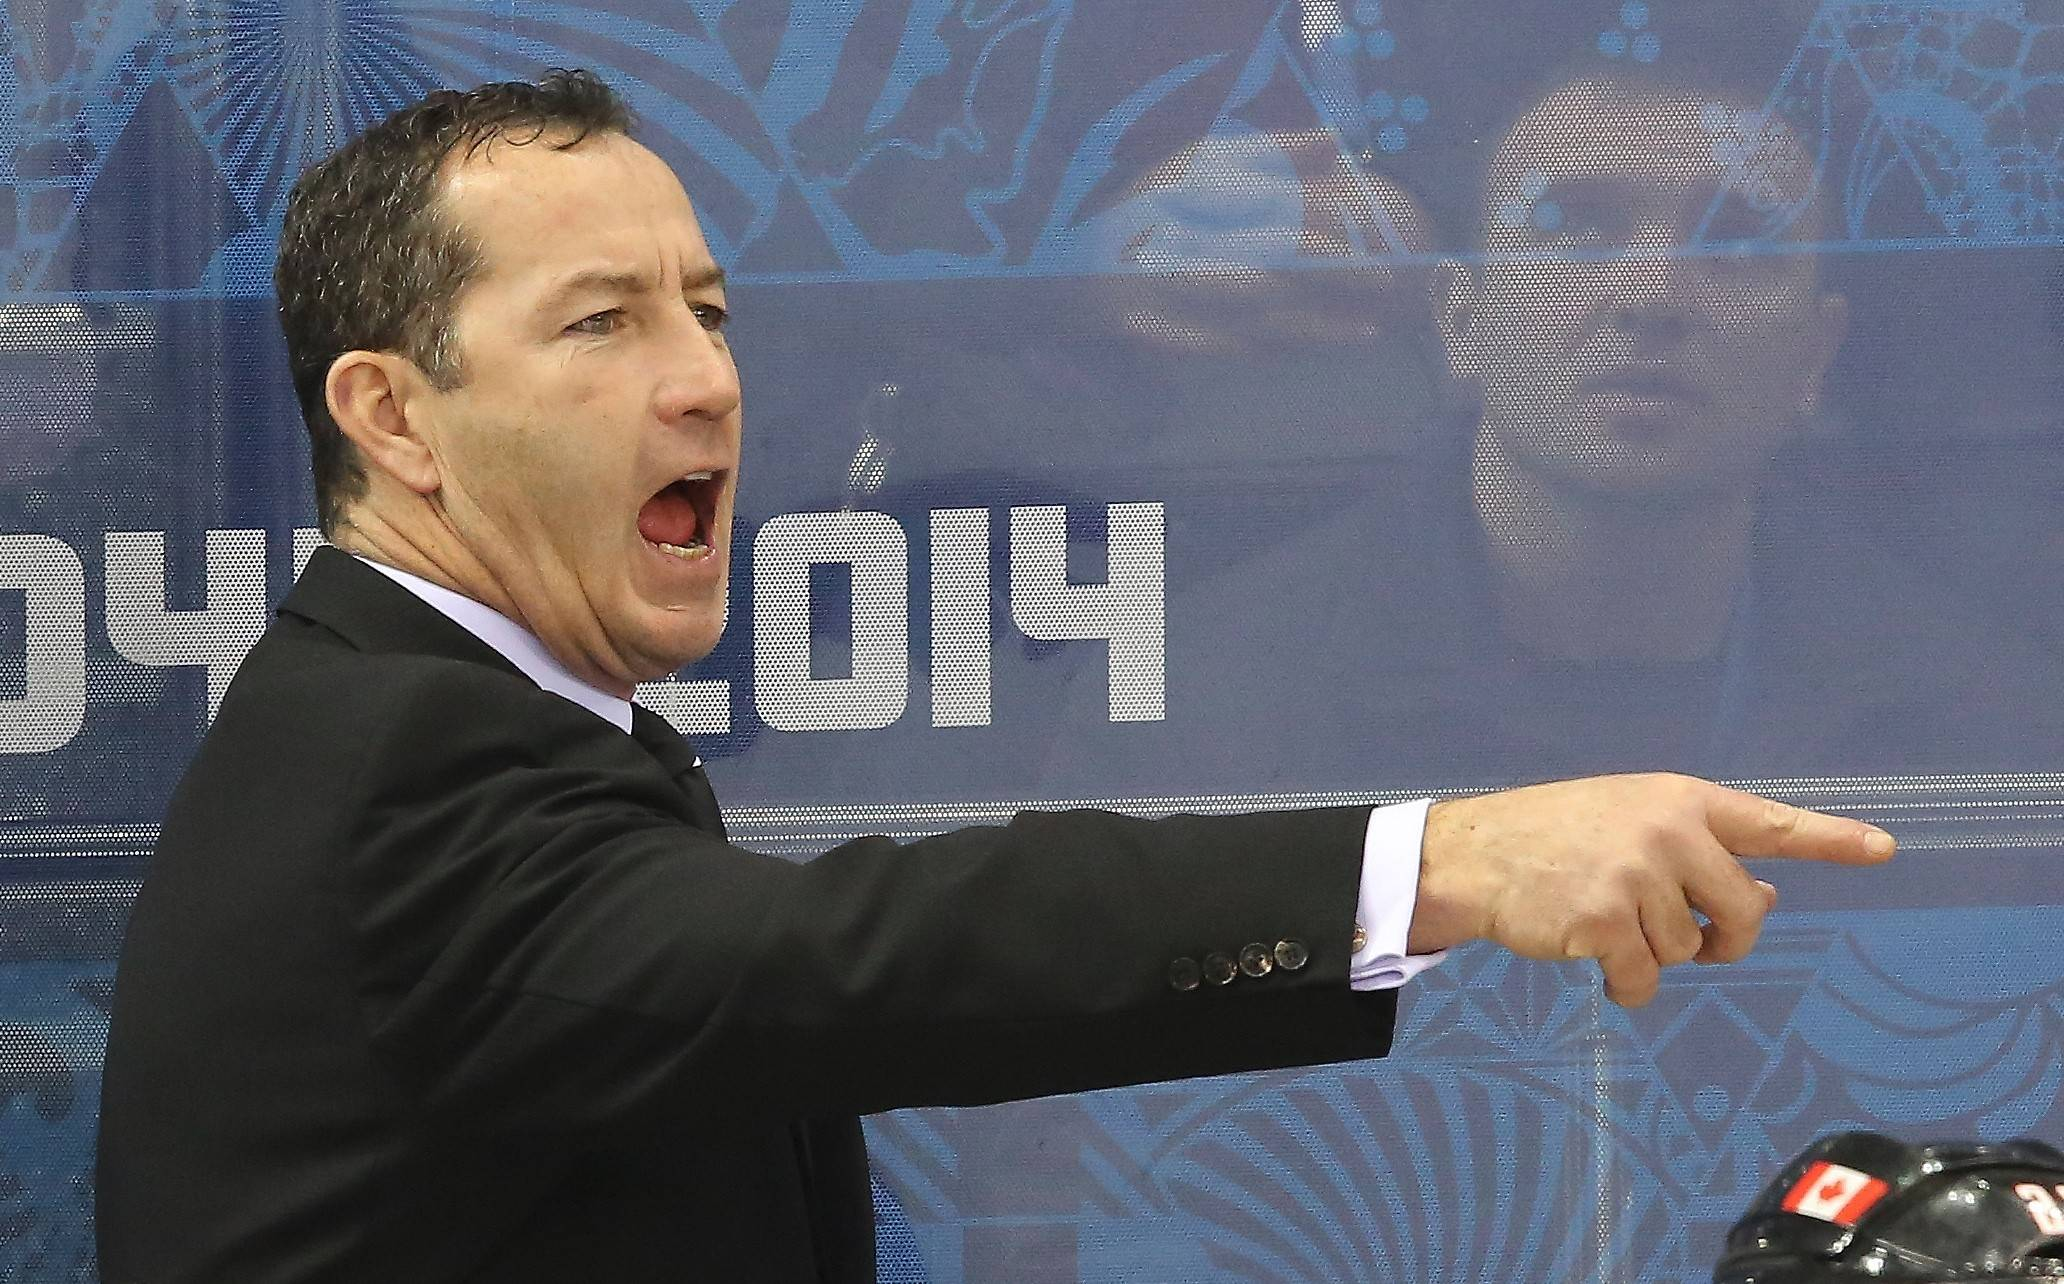 Hawks add Dineen to Quenneville's staff